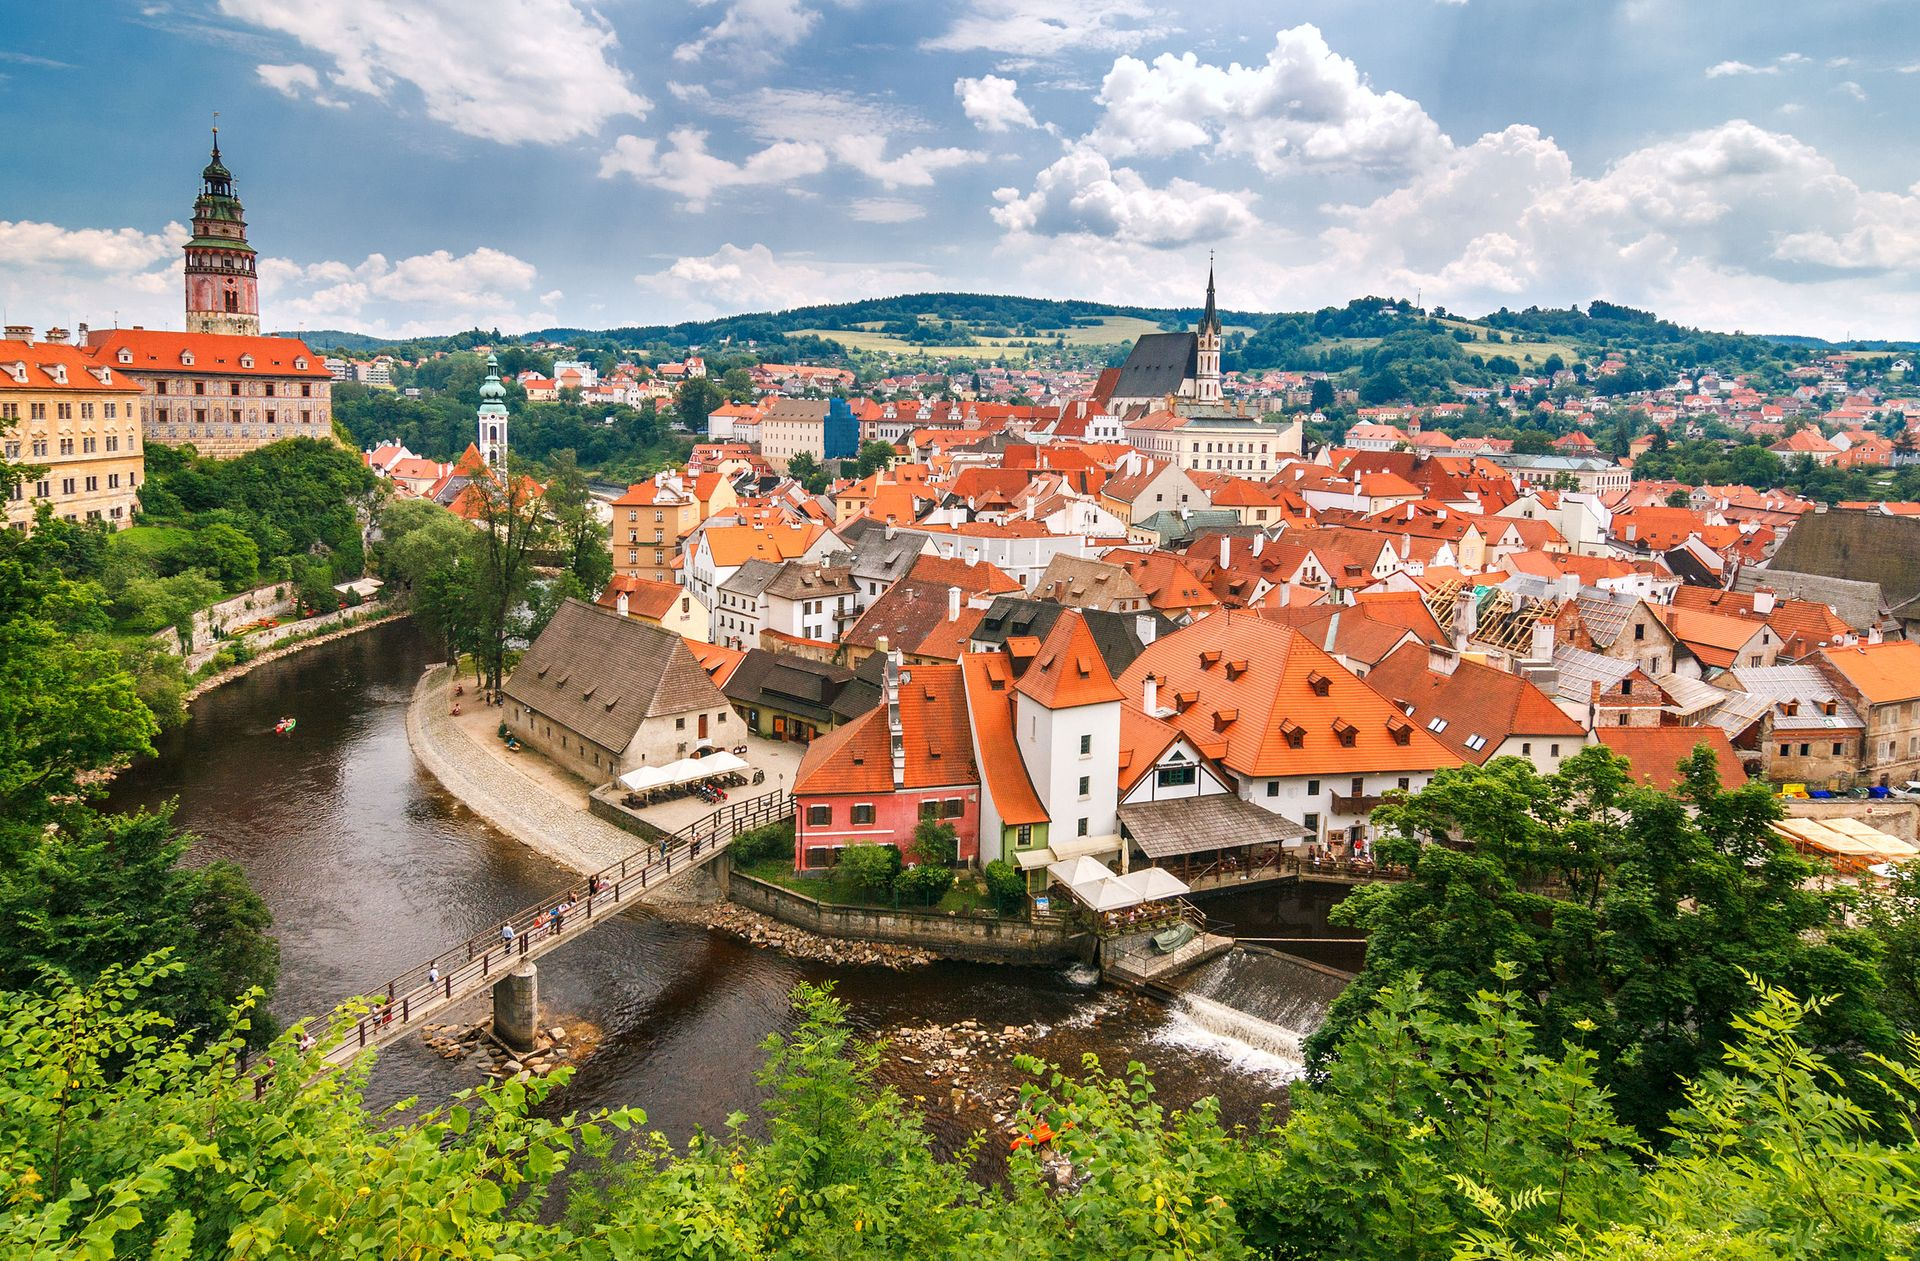 Medieval magic: The best day trip to take from Prague